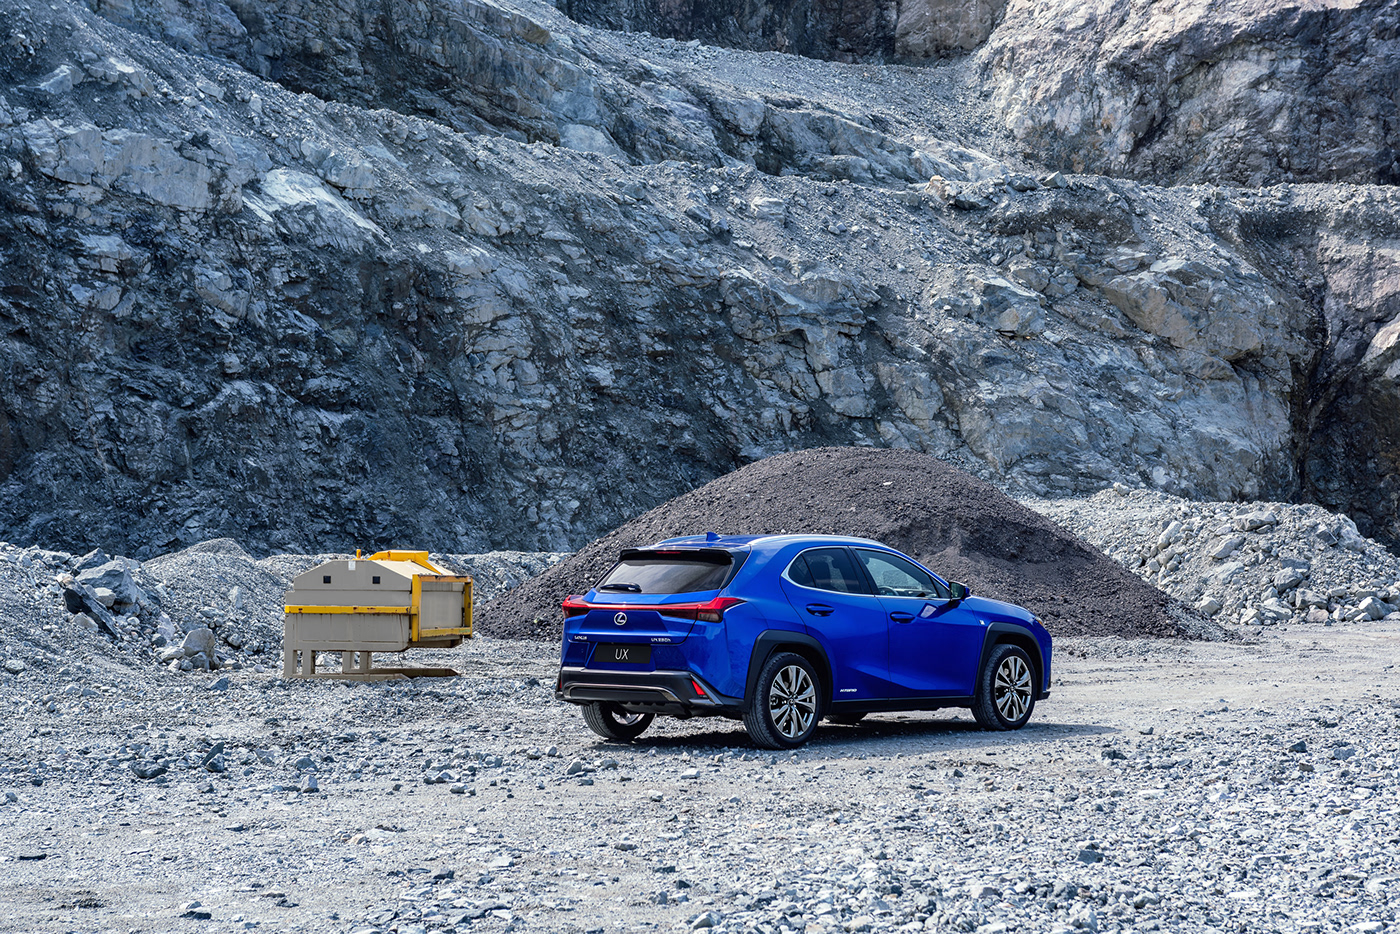 Lexus UX Hybrid car photography by Dean Wright Automotive. shot on lunar like surface.